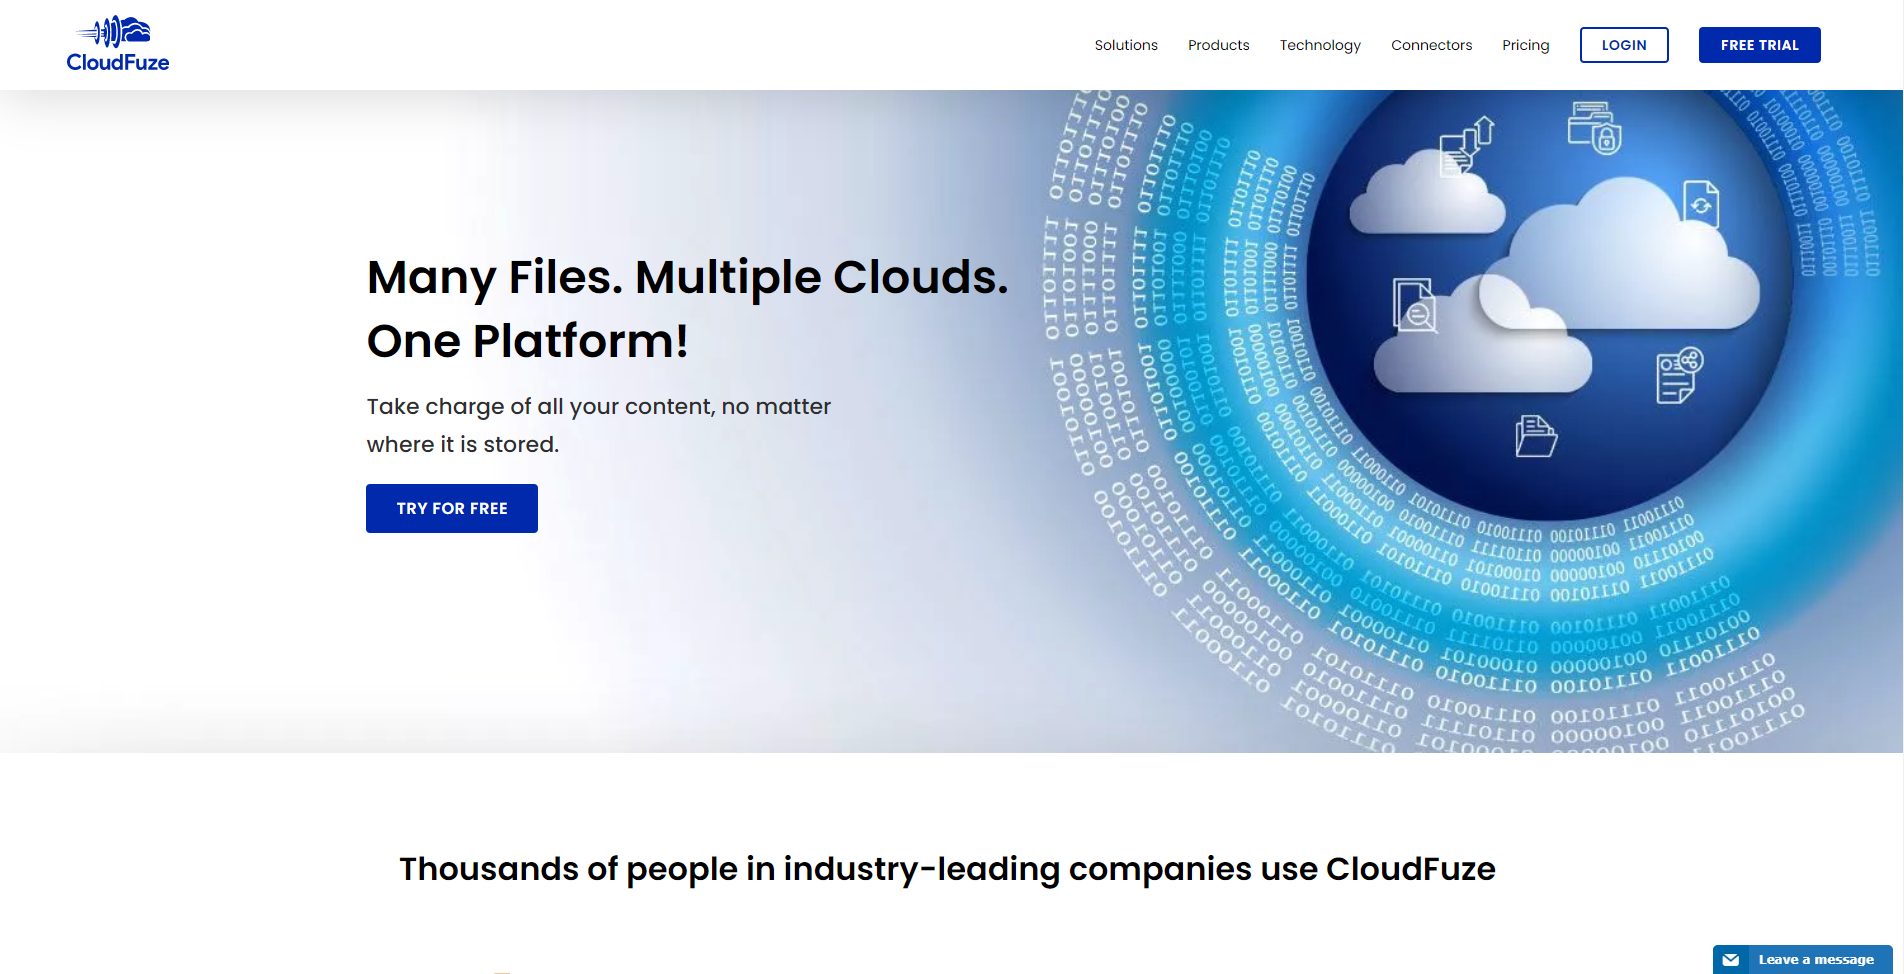 Combine Your Digital Storage All In One Place